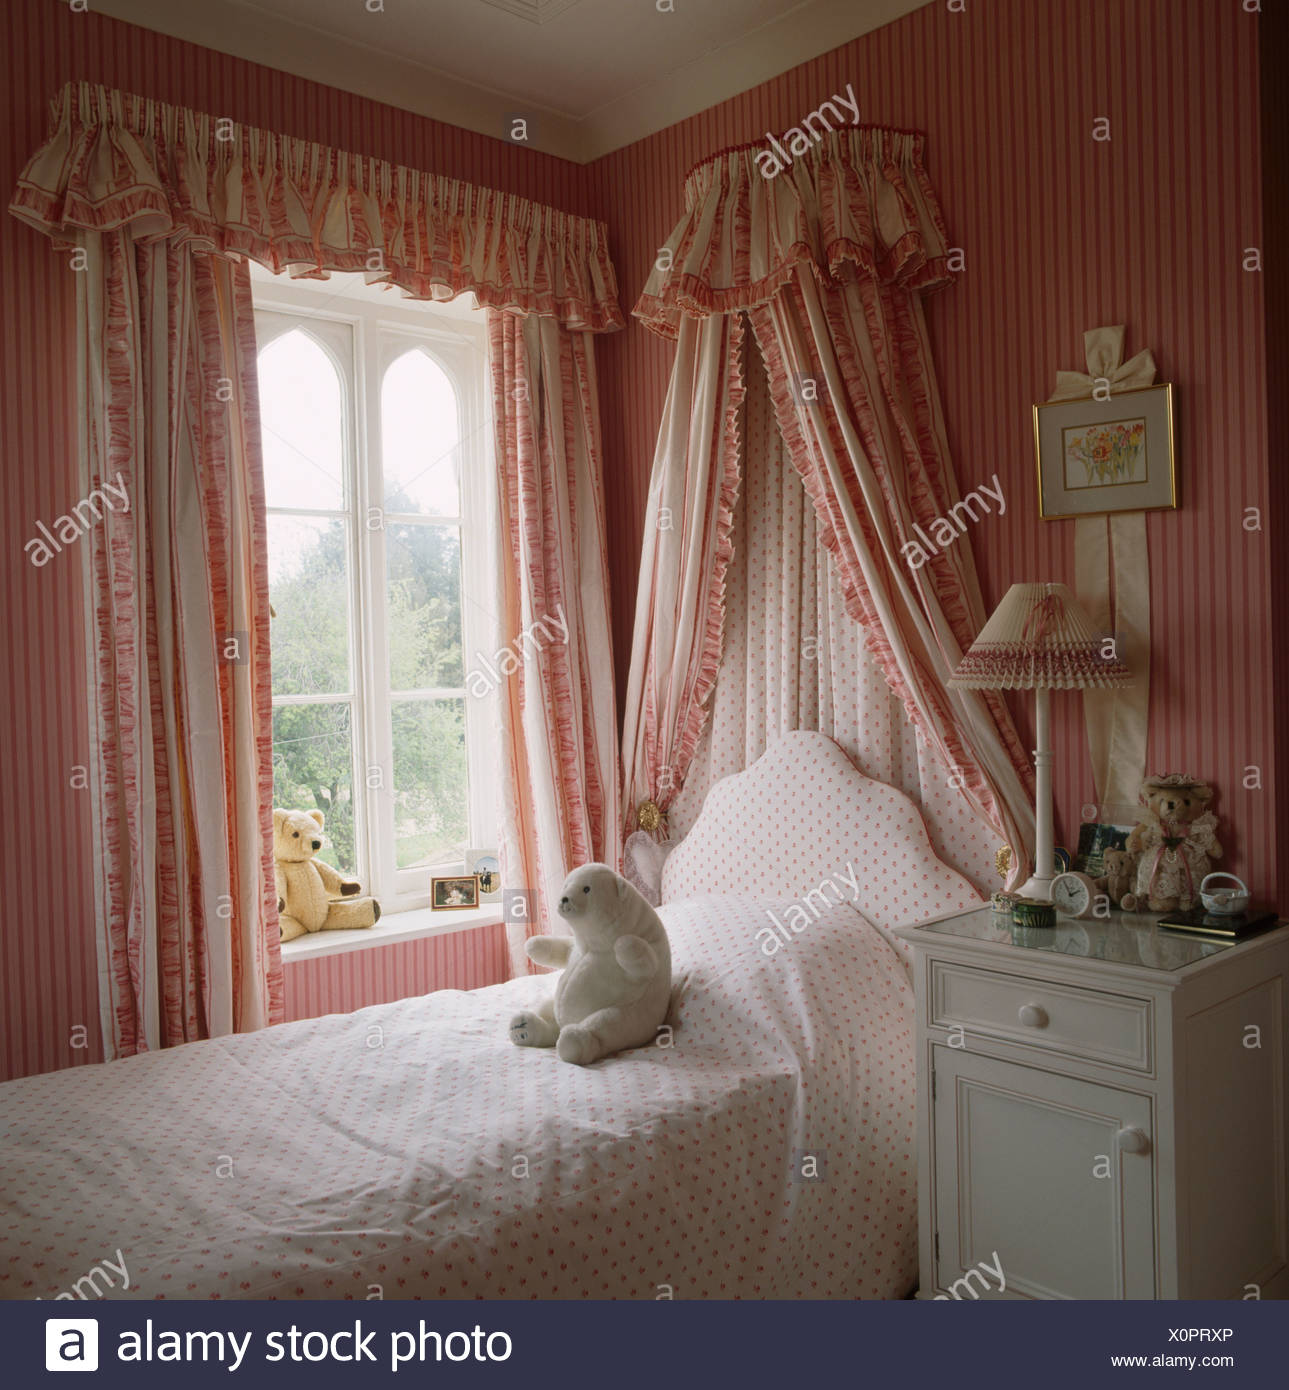 Bed With Coronet And Drapes Beside Window In Childs Bedroom With Pink Striped Wallpaper And Pink Curtains Stock Photo Alamy